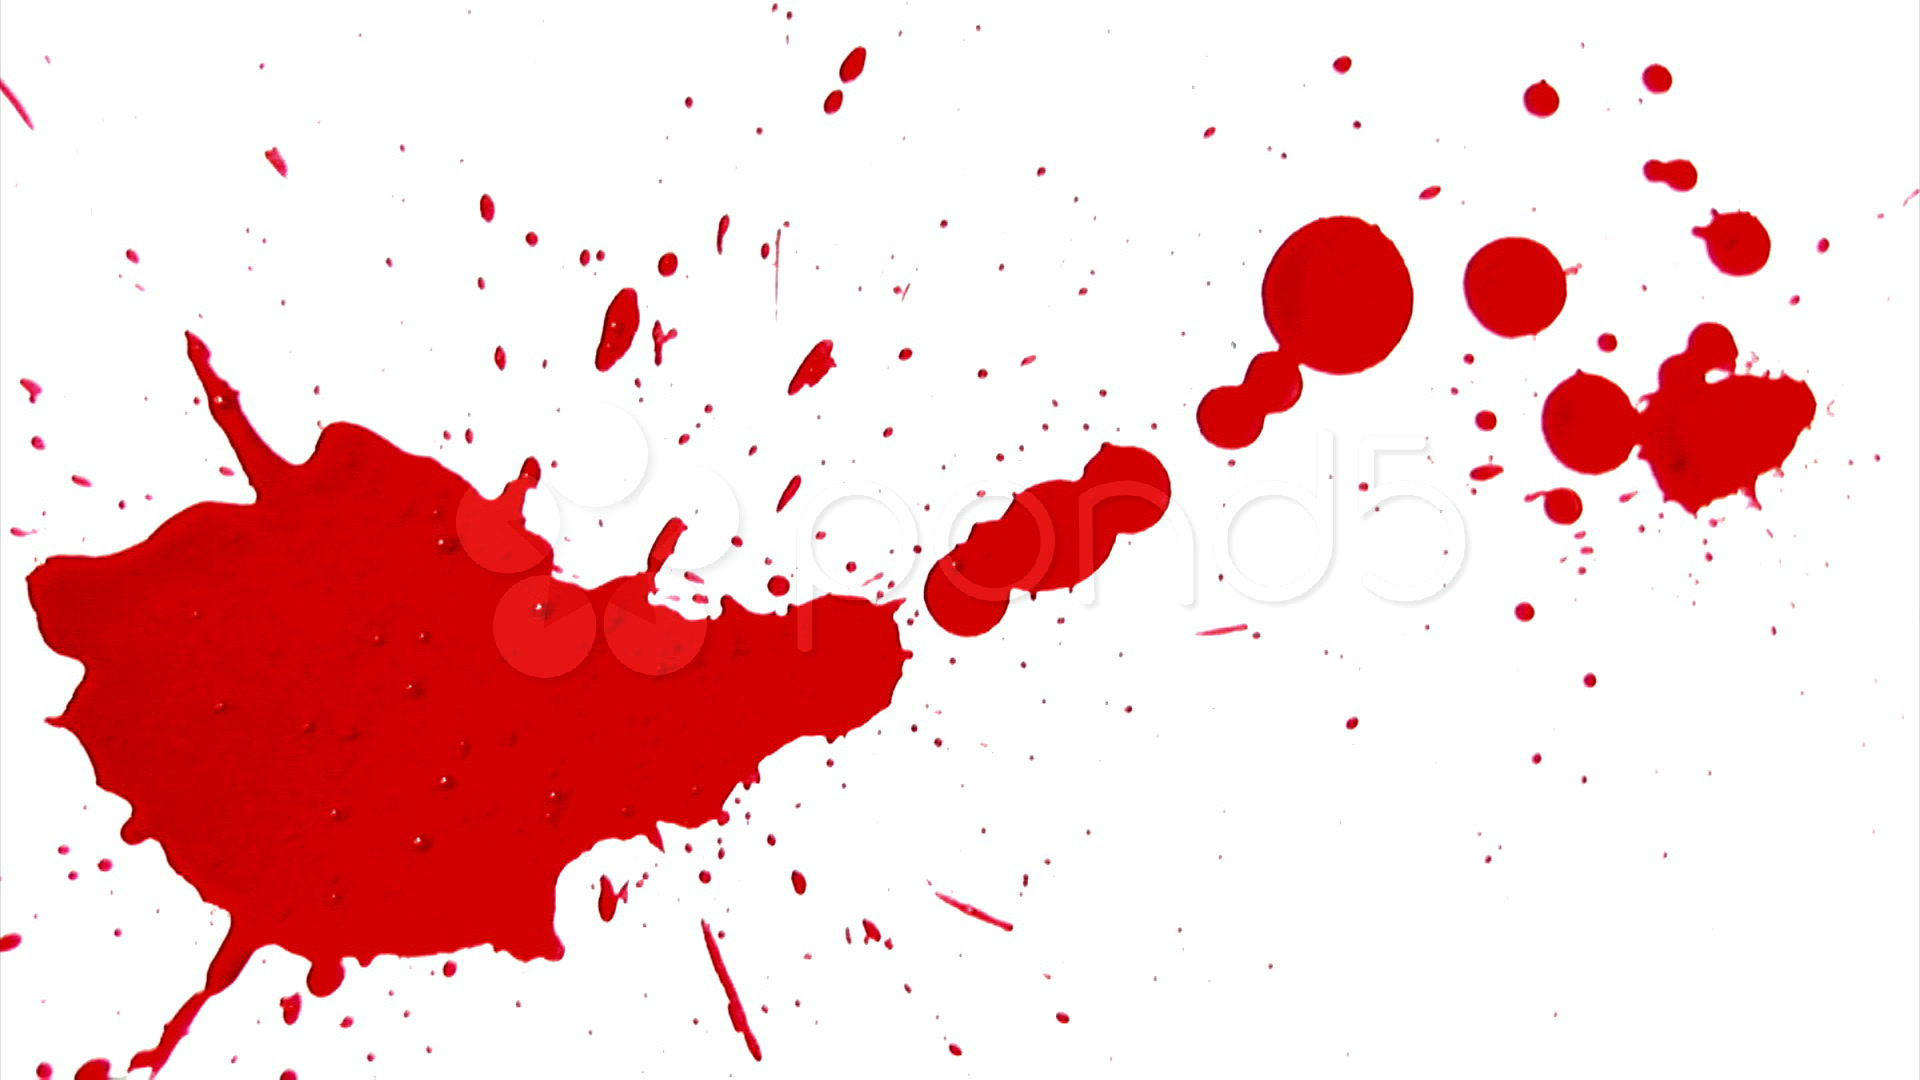 Blood clipart blood droplet. Drop black and white